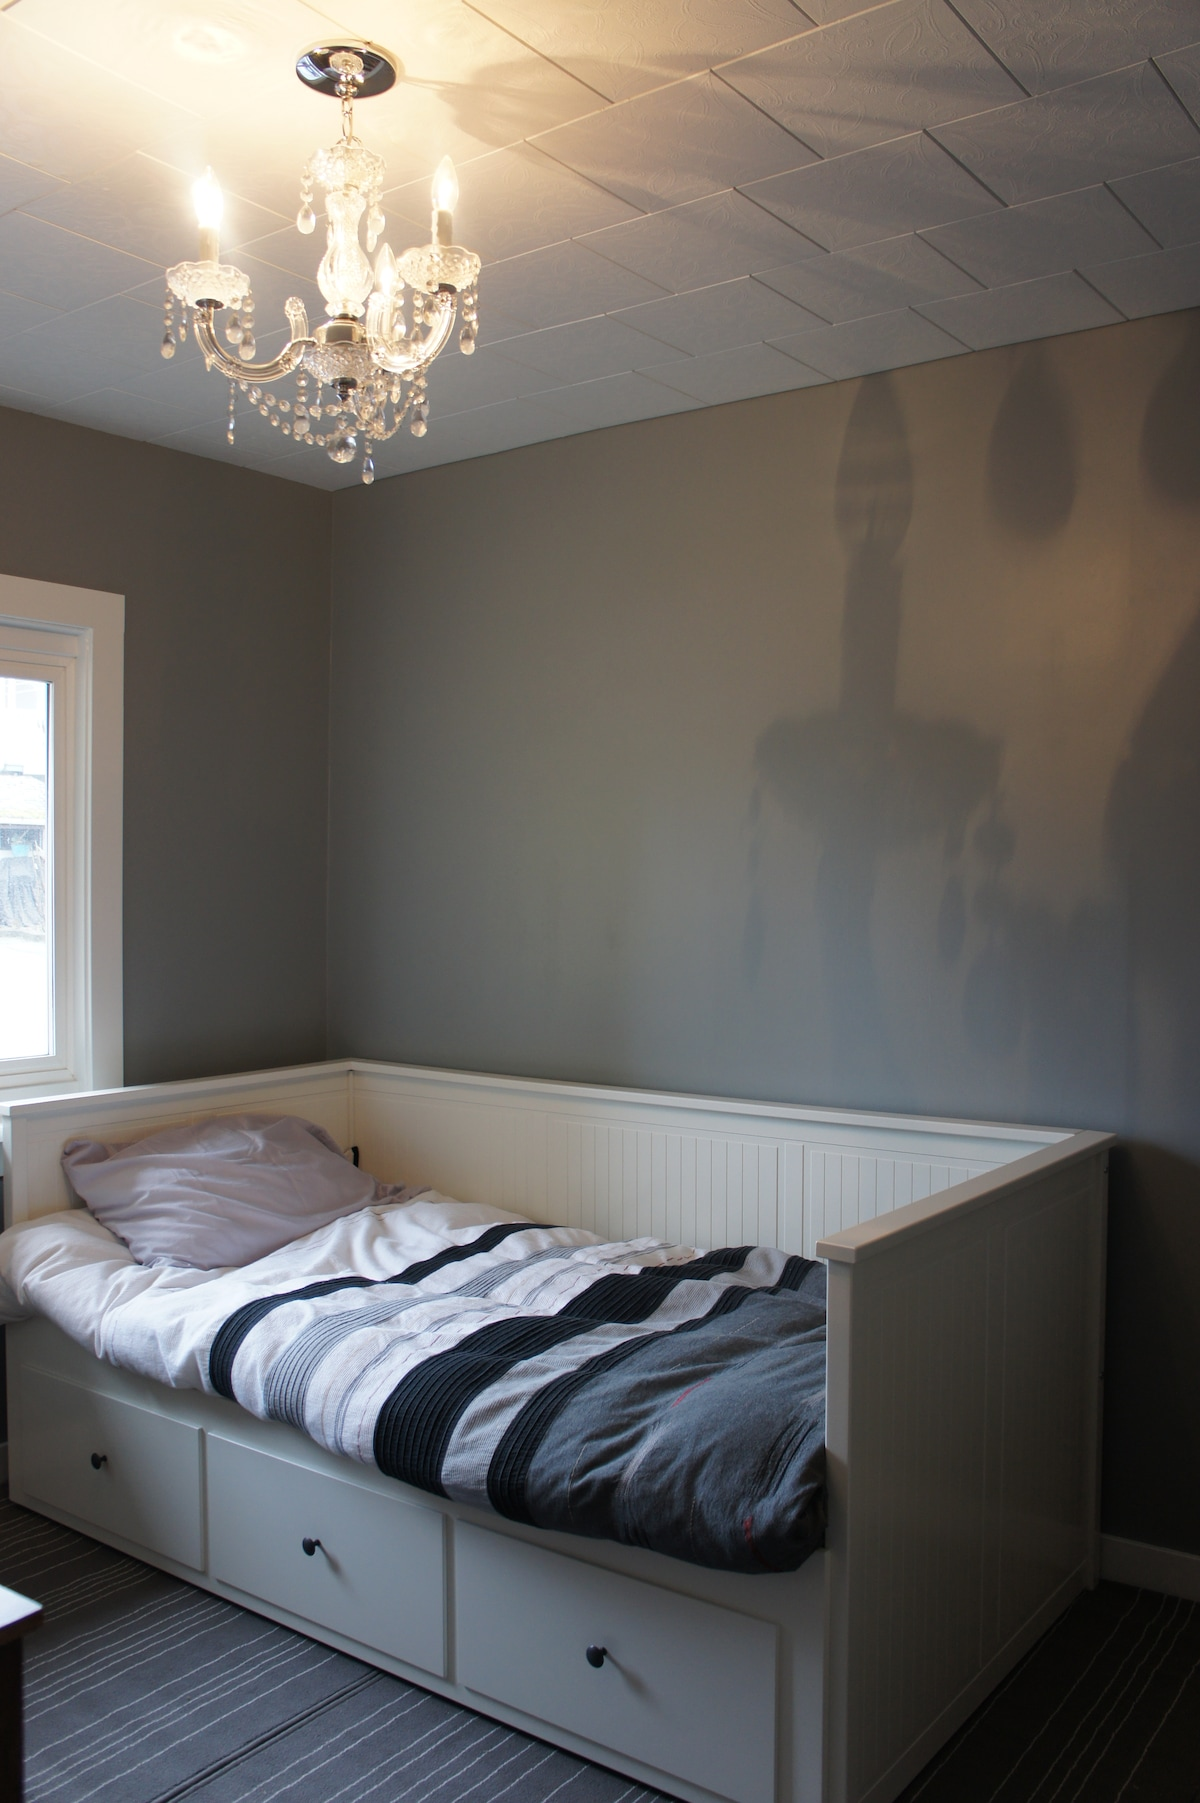 Newly renovated clean, bright room